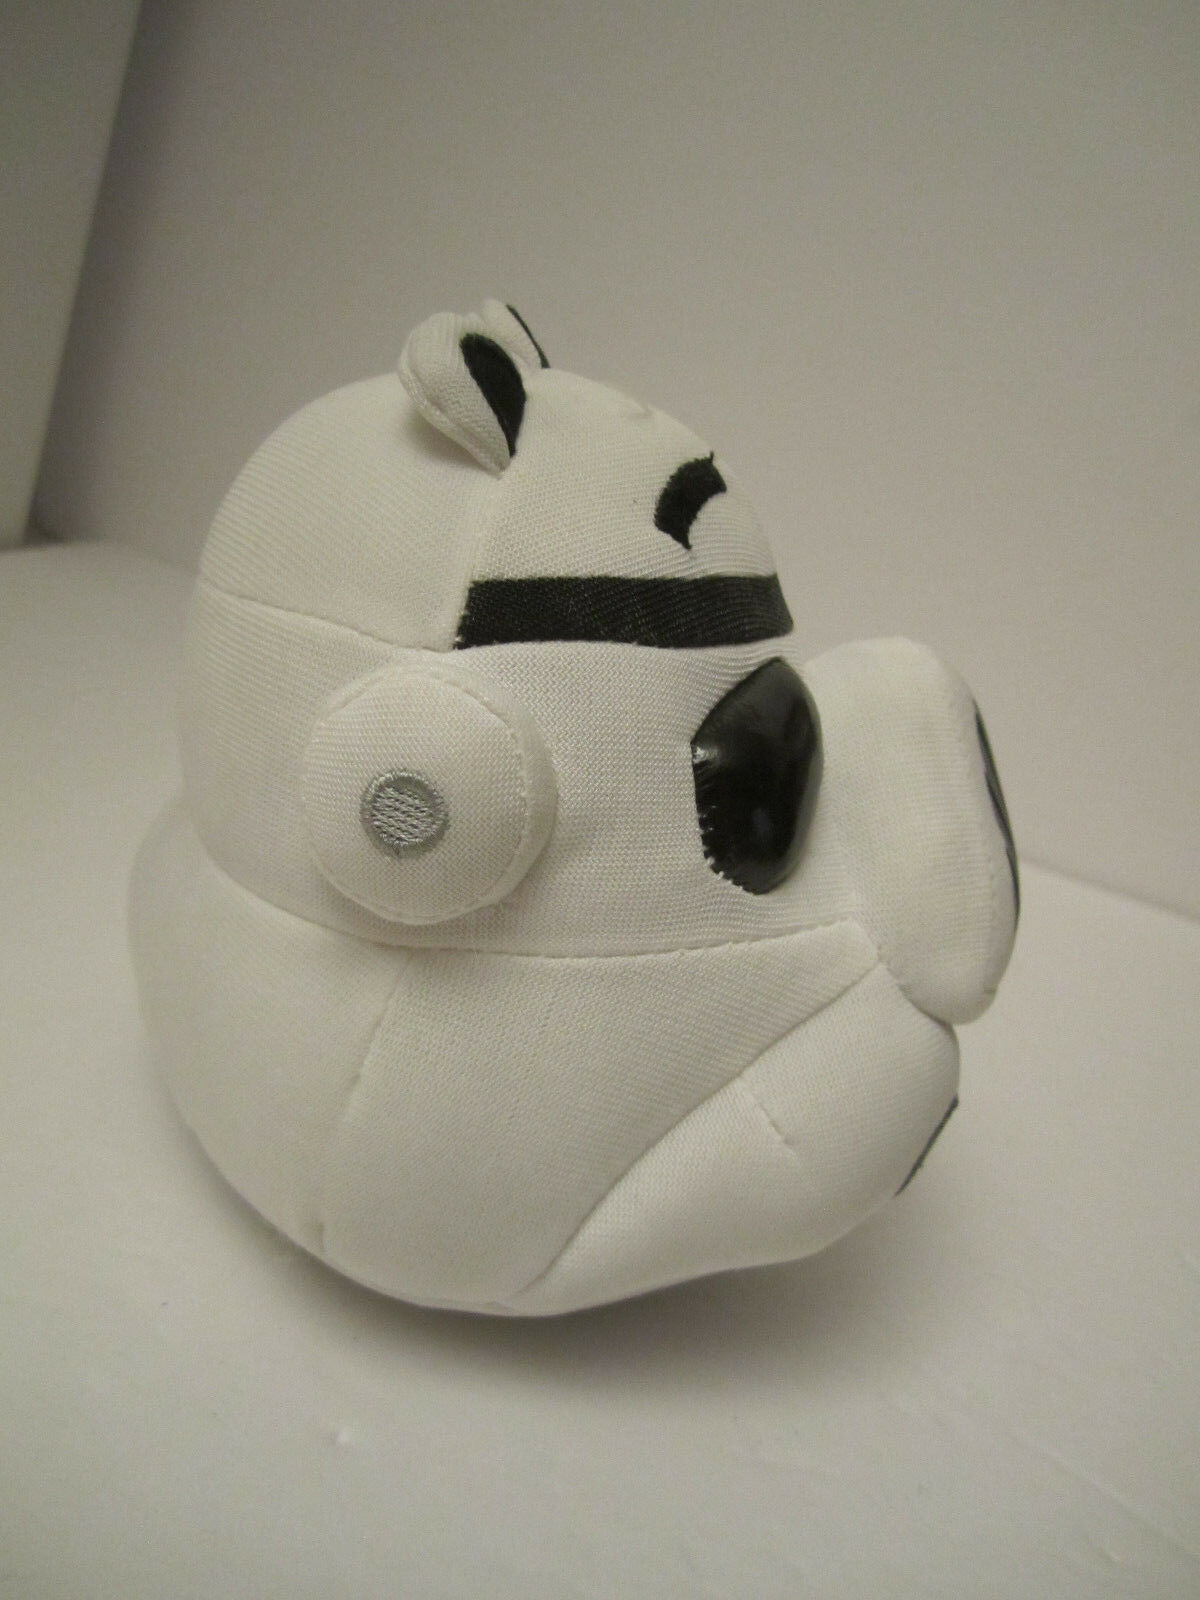 Angry Bird Star Wars Plush Stormtrooper Pig + Darth Vader Clip NM PRE-OWNED image 6